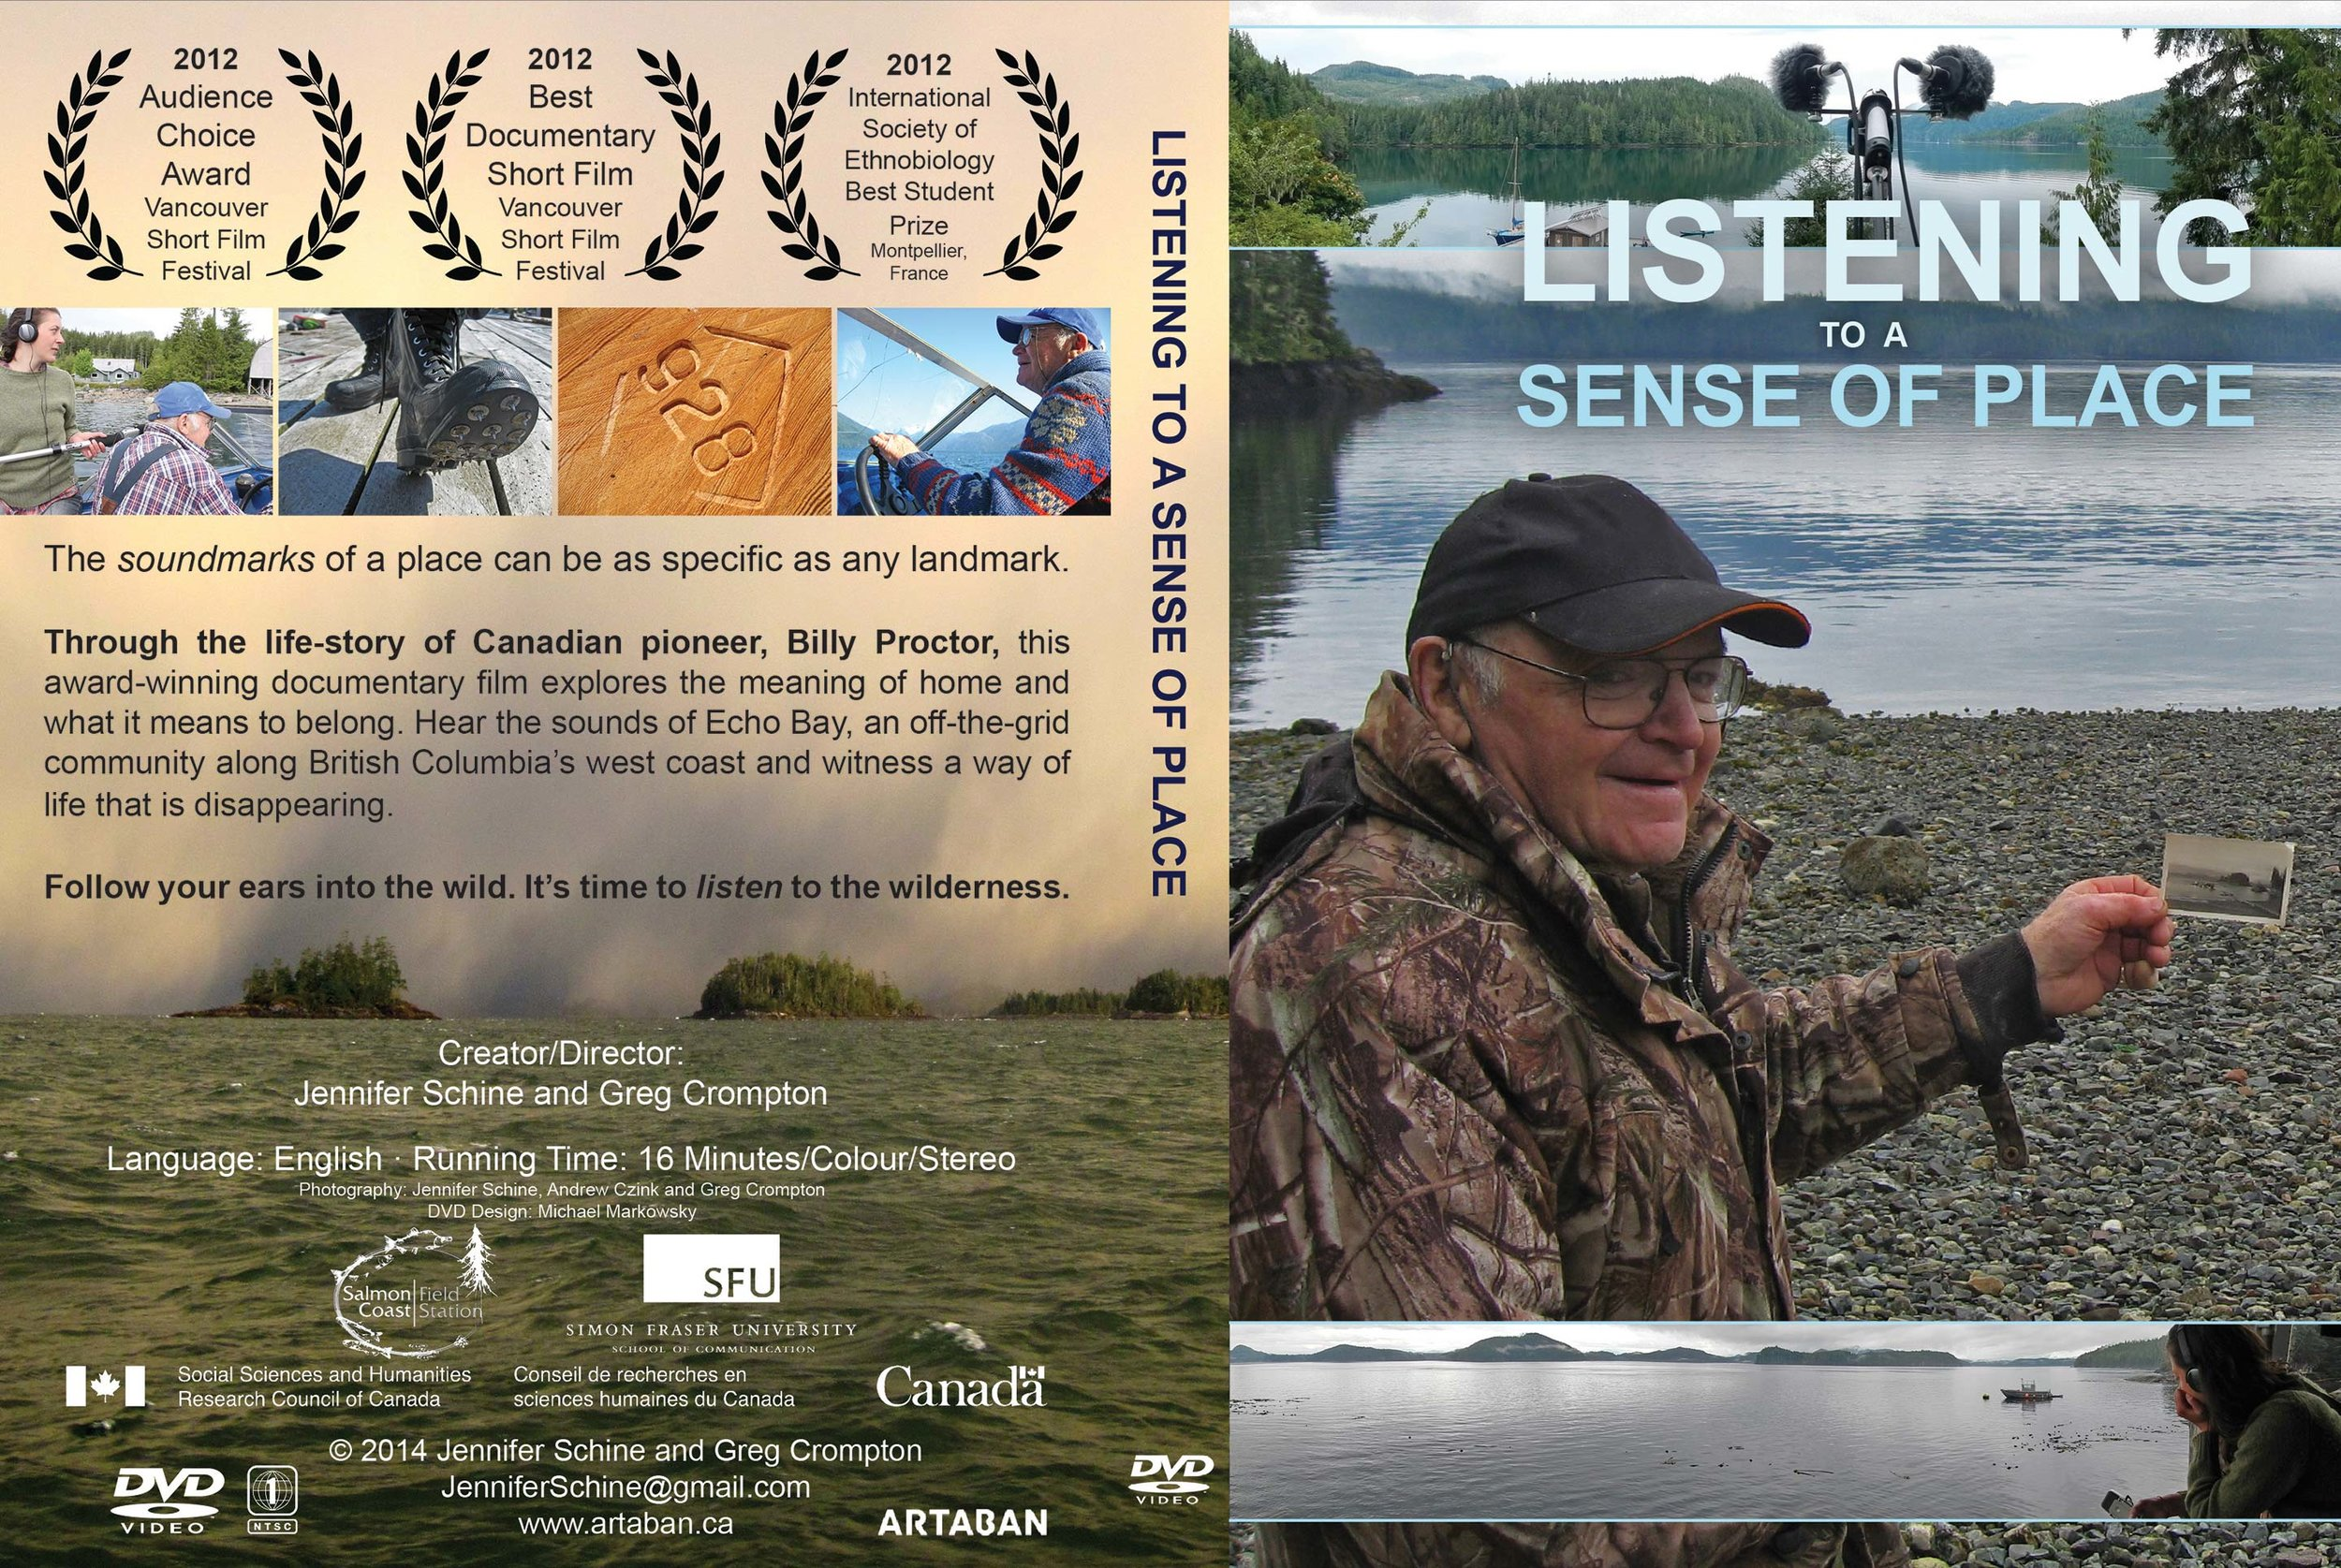 Award-winning Film - Listening to a Sense of Place